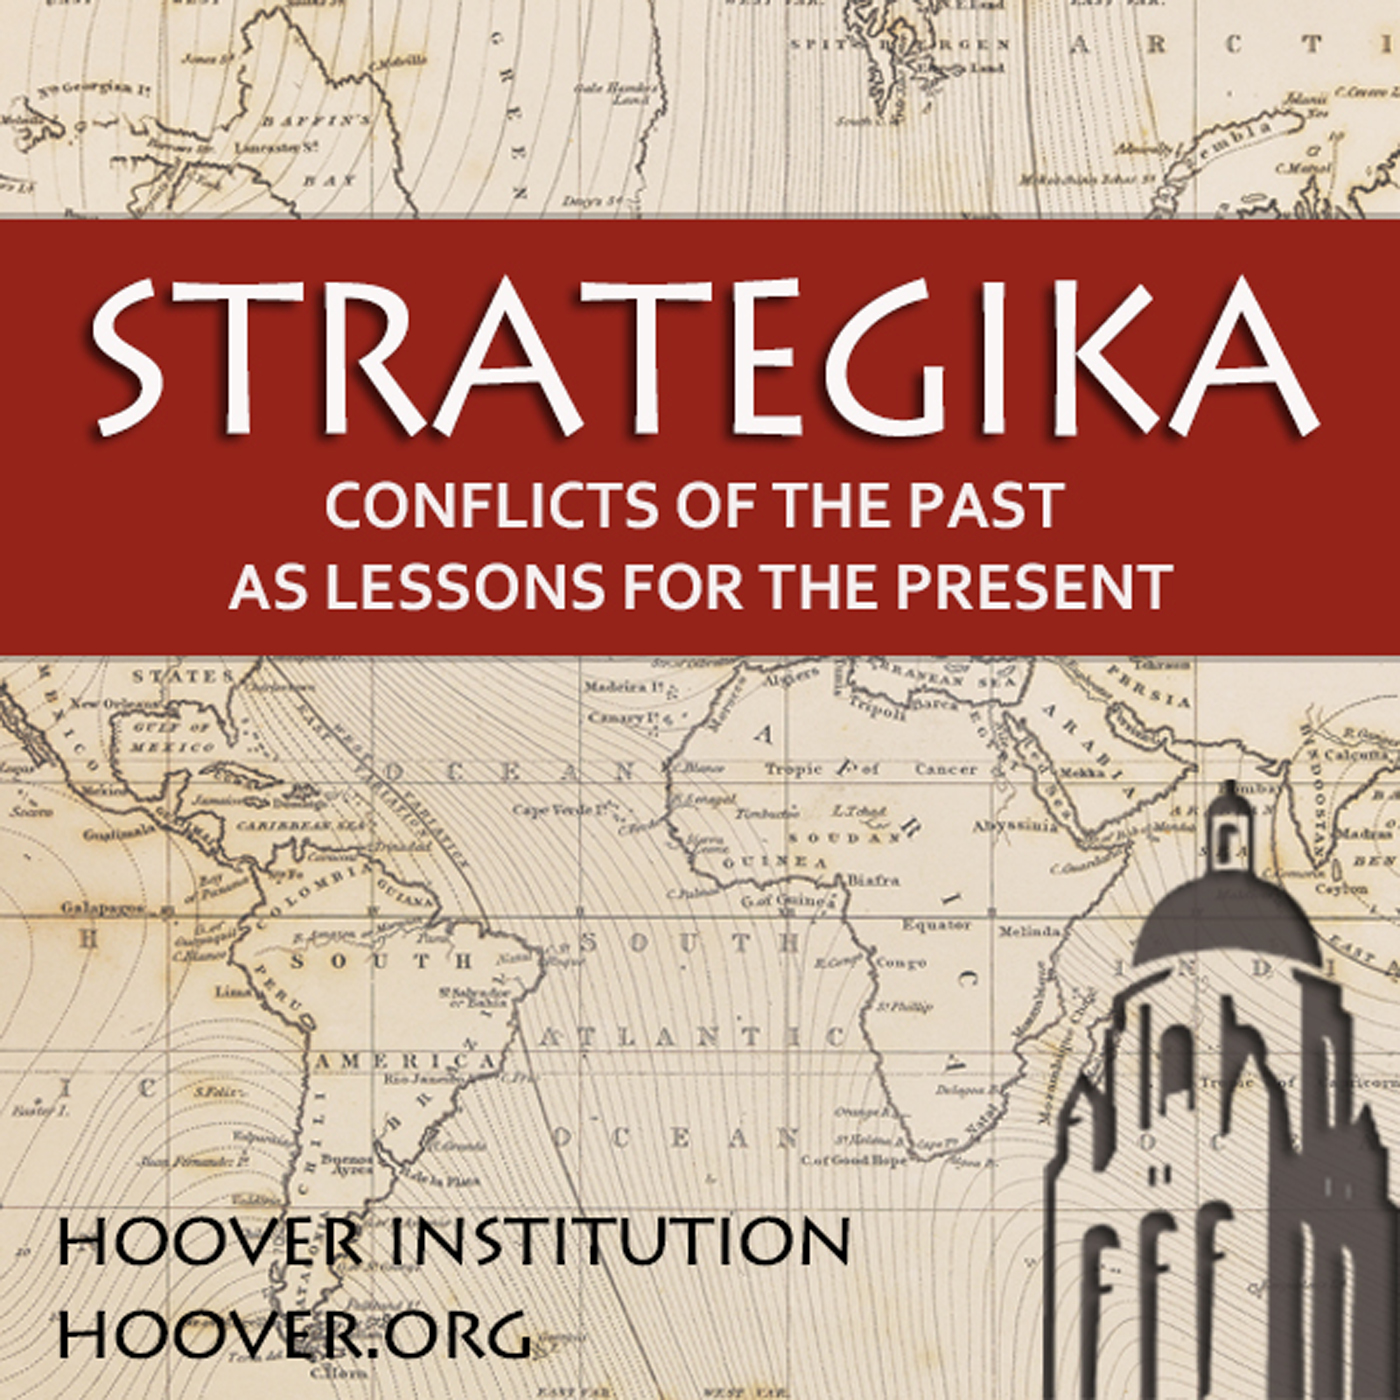 Hoover Institution: Strategika